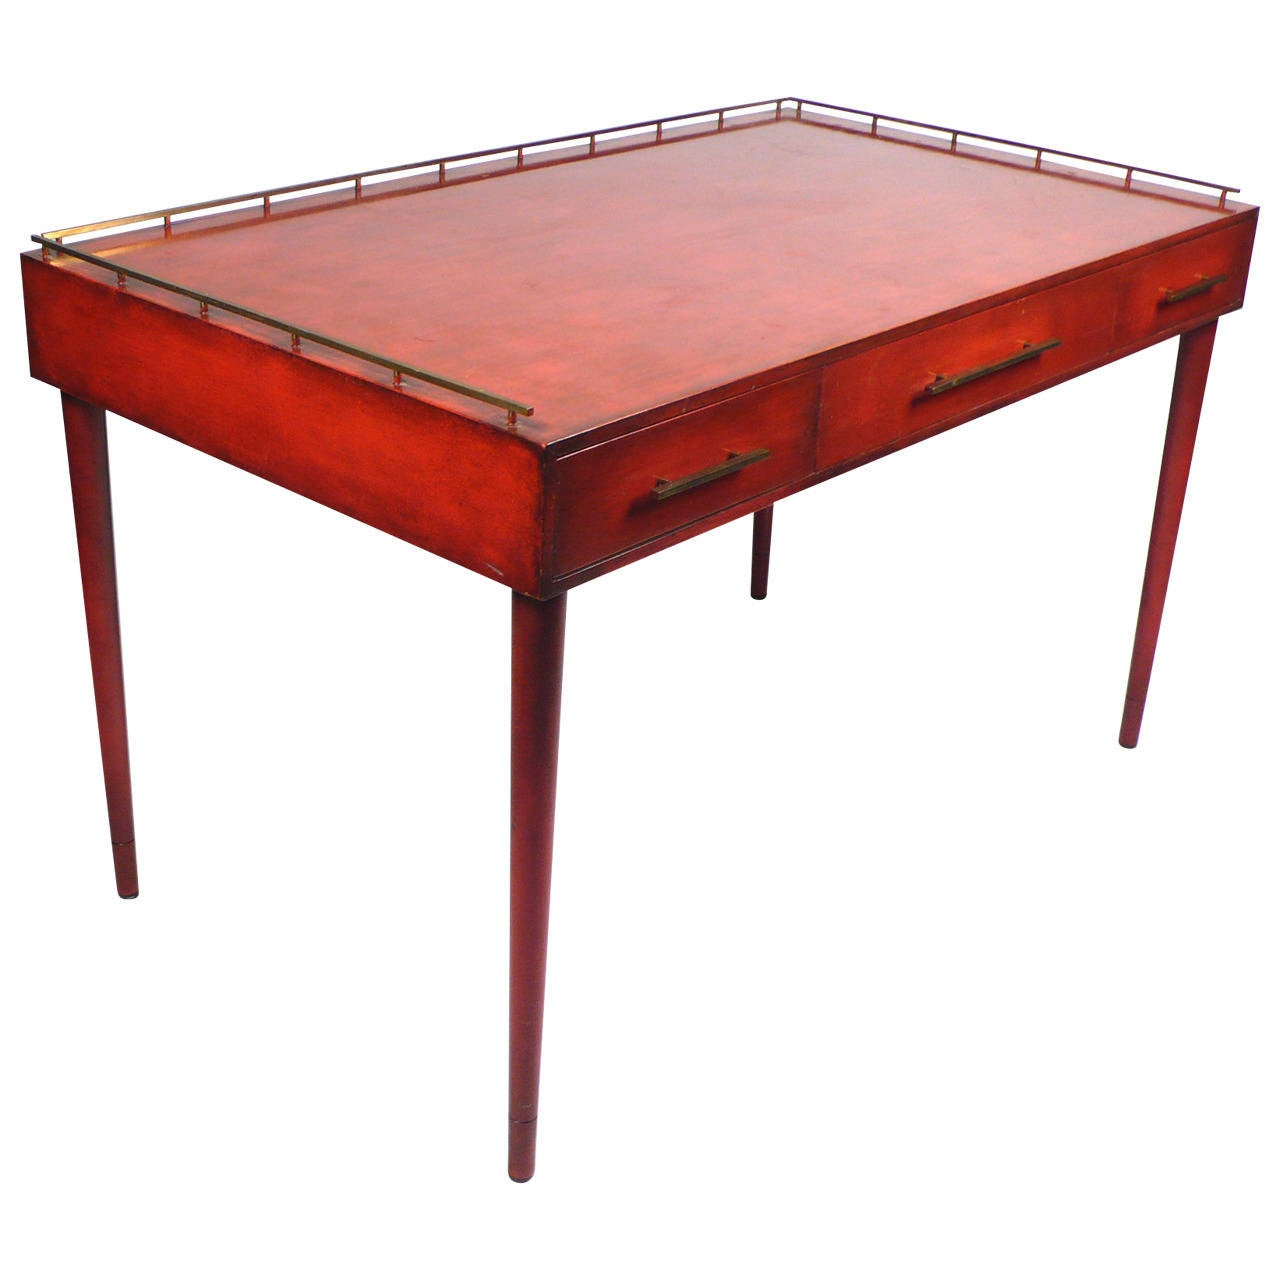 Imperial Coffee Table Unique Three Drawer Writing Desk By Imperial For Sale At 1stdibs